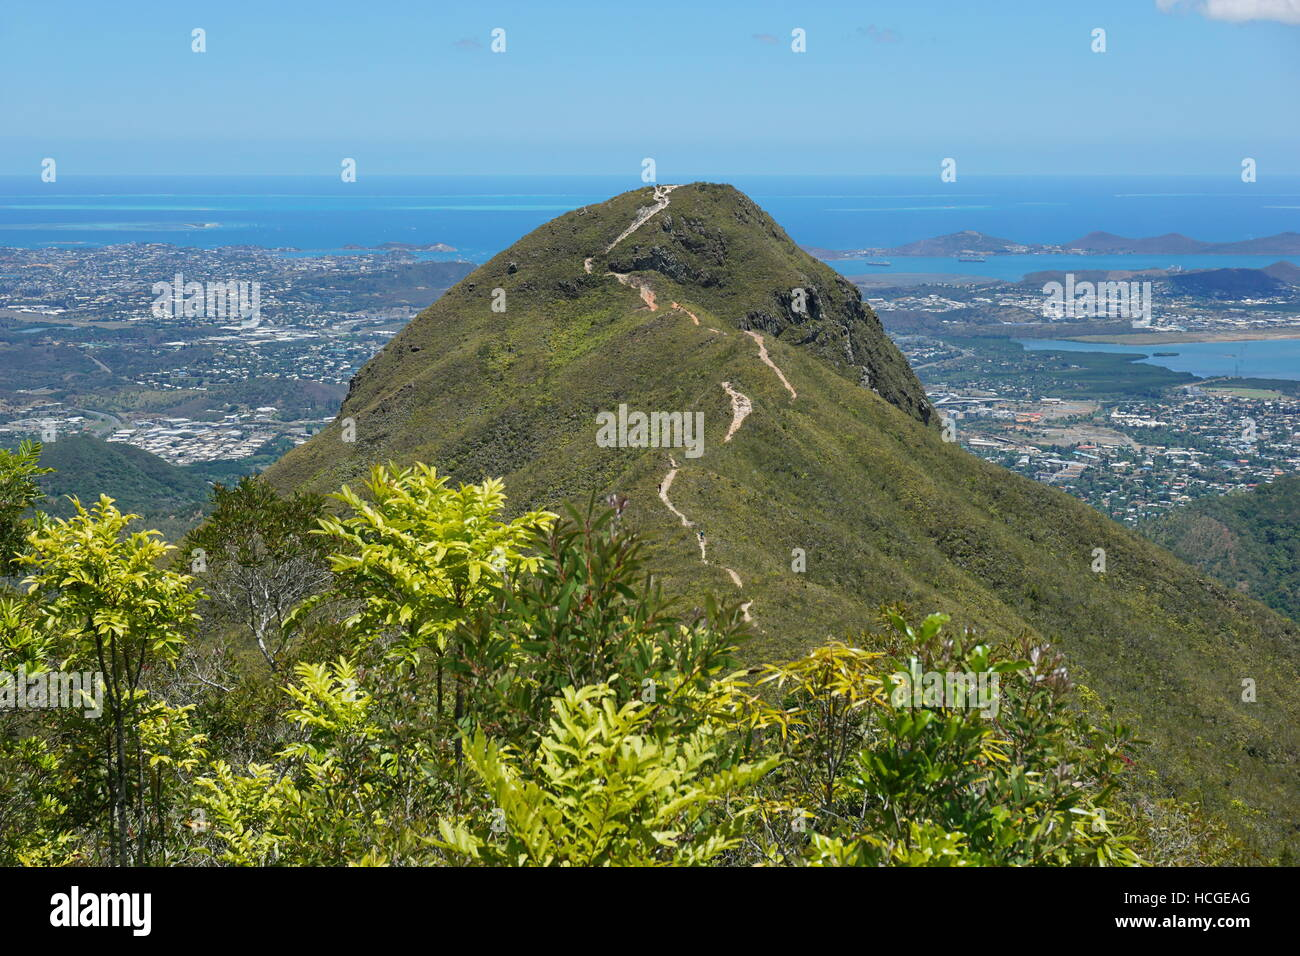 The peak Malaoui with the Pacific ocean and the city of Noumea in background, New Caledonia, south Pacific - Stock Image